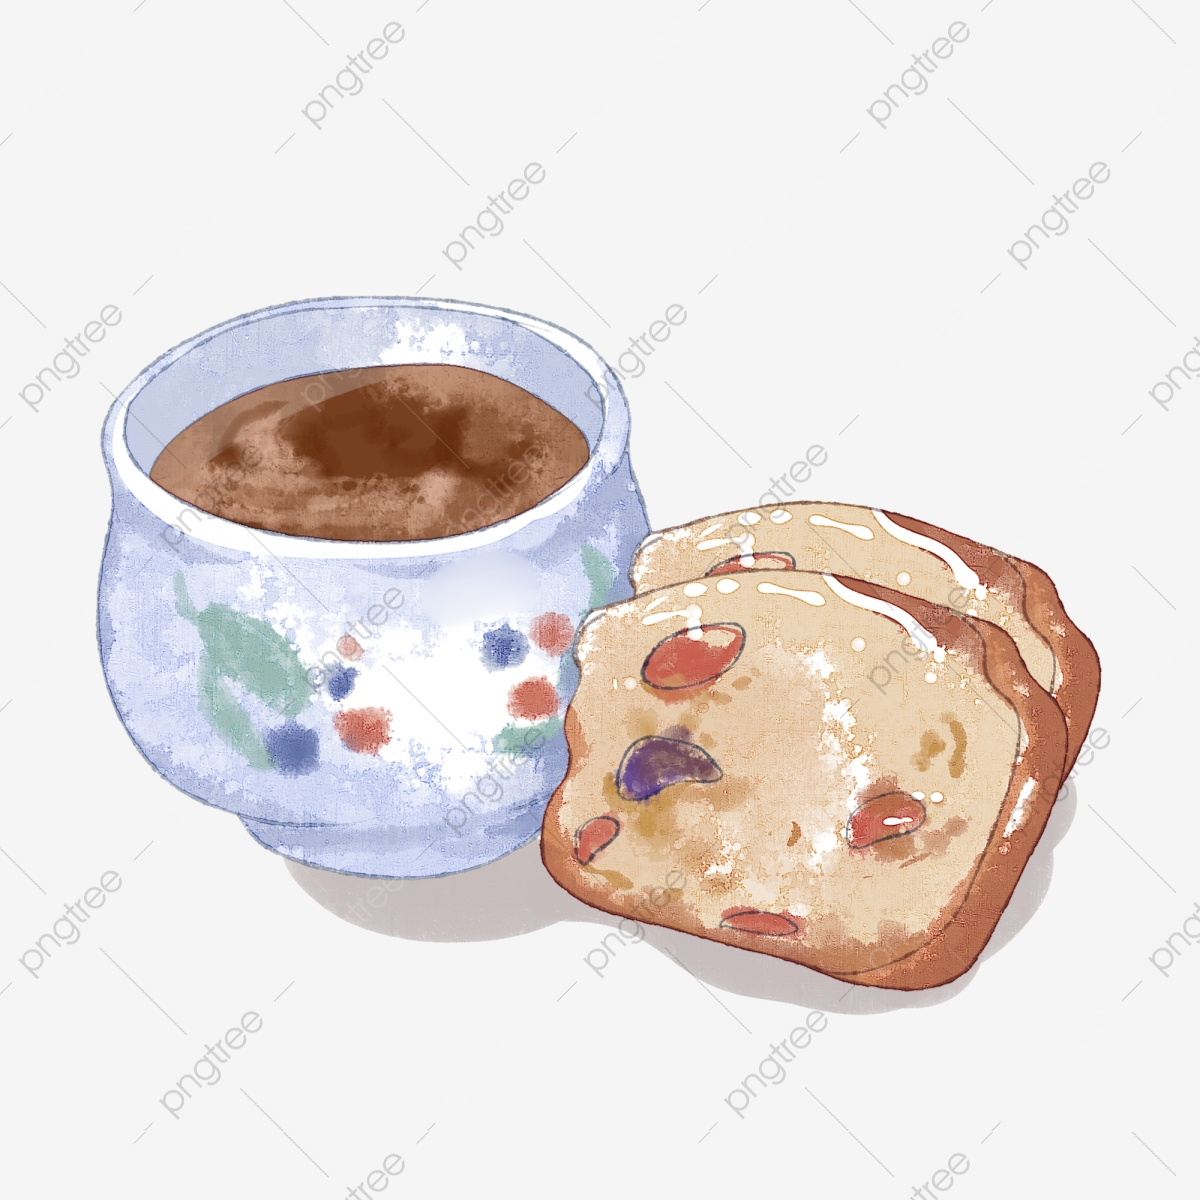 Afternoon Tea Bread Milk Tea Watercolor Afternoon Tea Dessert Combination Png Transparent Clipart Image And Psd File For Free Download